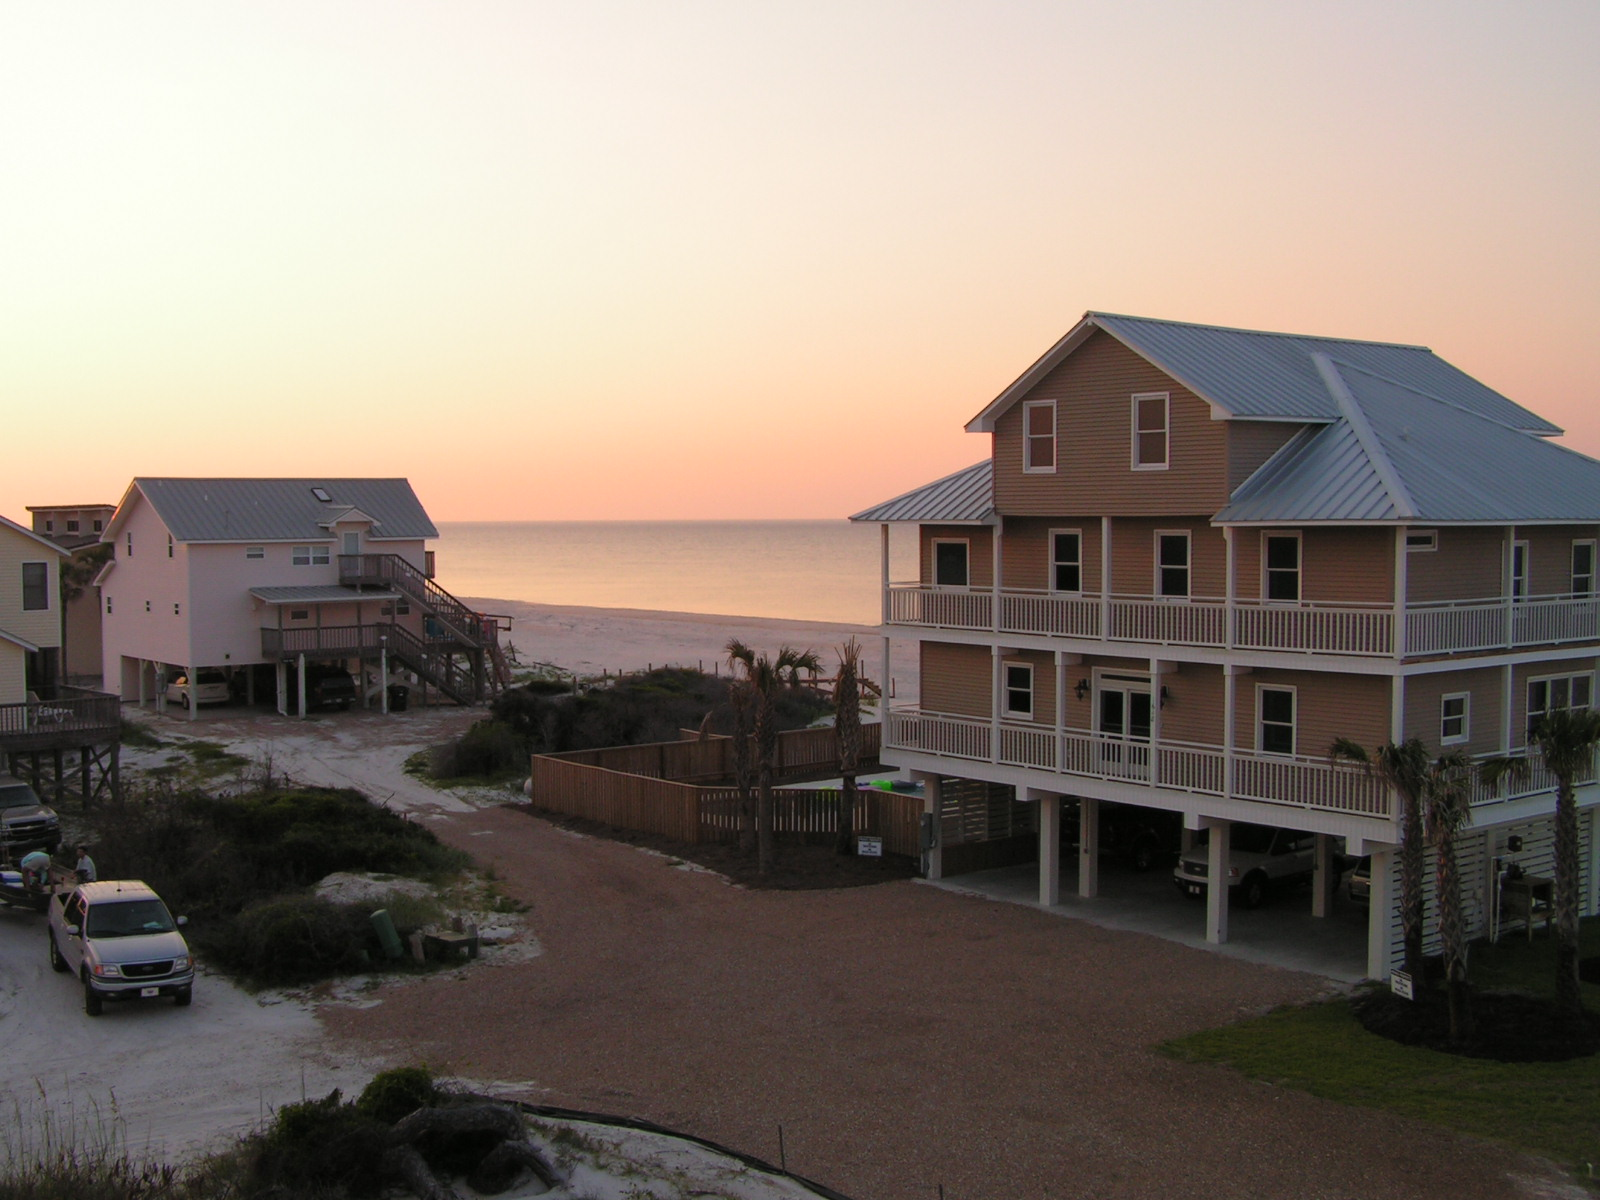 St. George Island offers many beach houses for rent - large or small on the Gulf of Mexico or Apalachicola Bay.